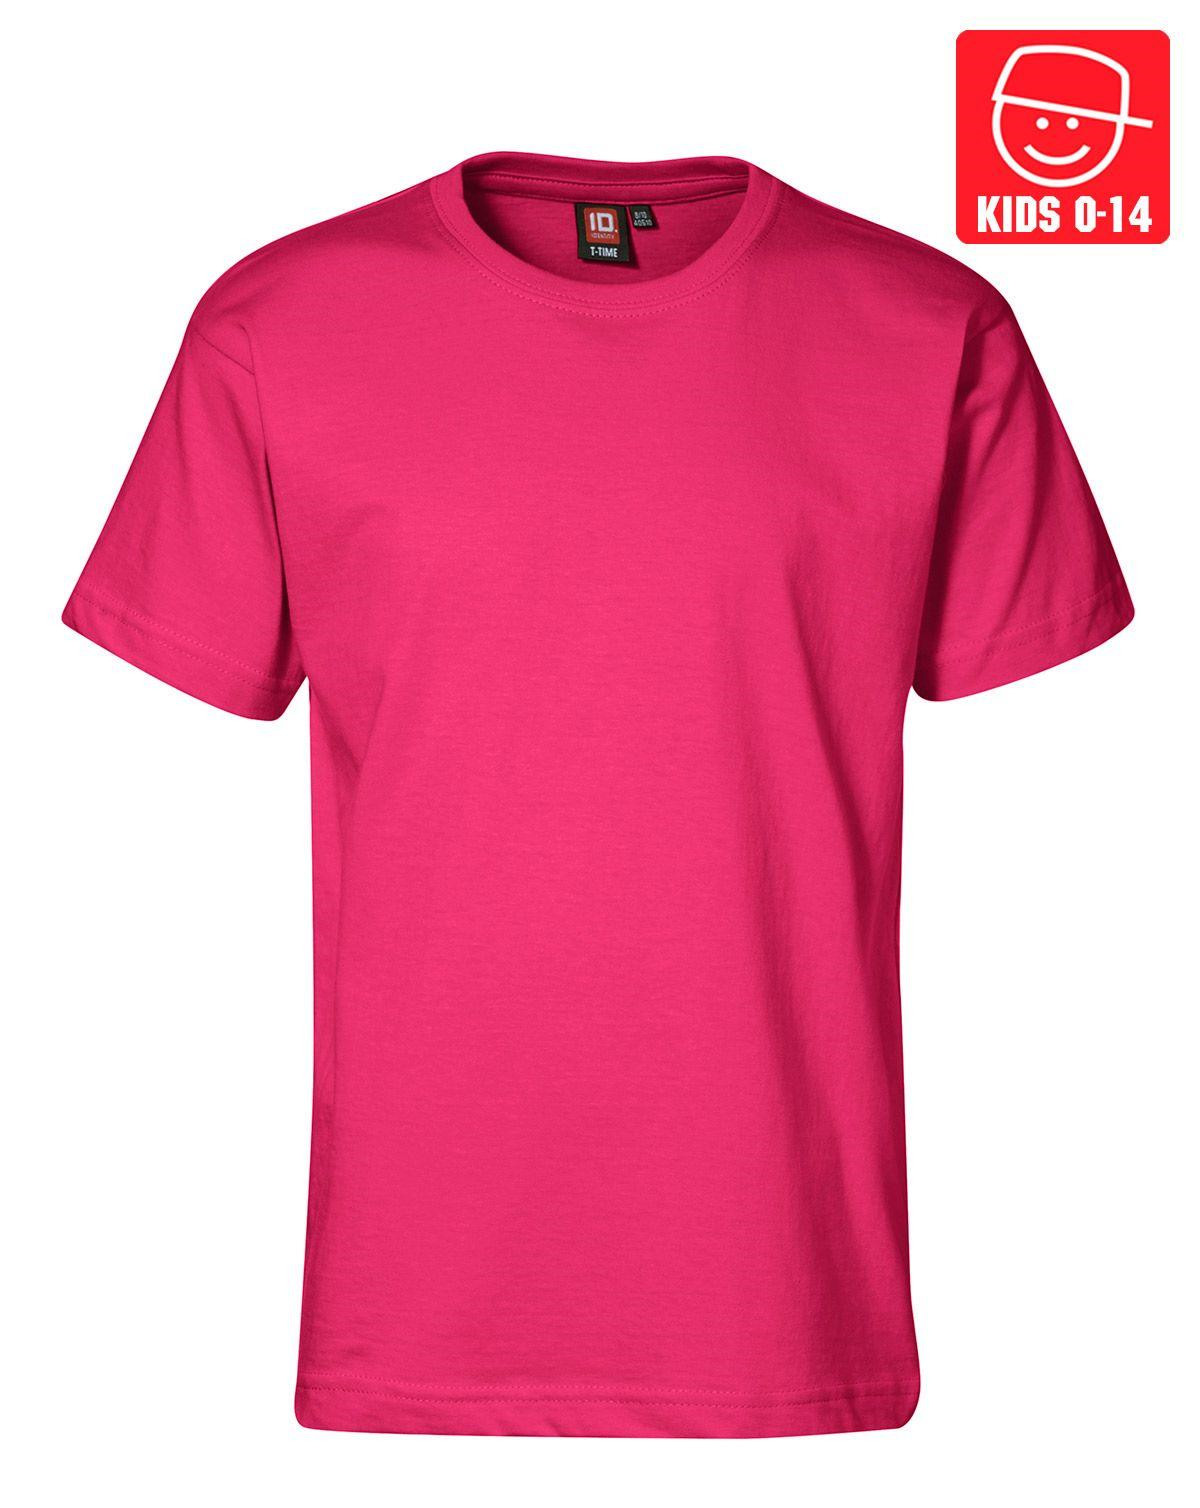 Image of   ID T-TIME T-shirt (Pink, 128)